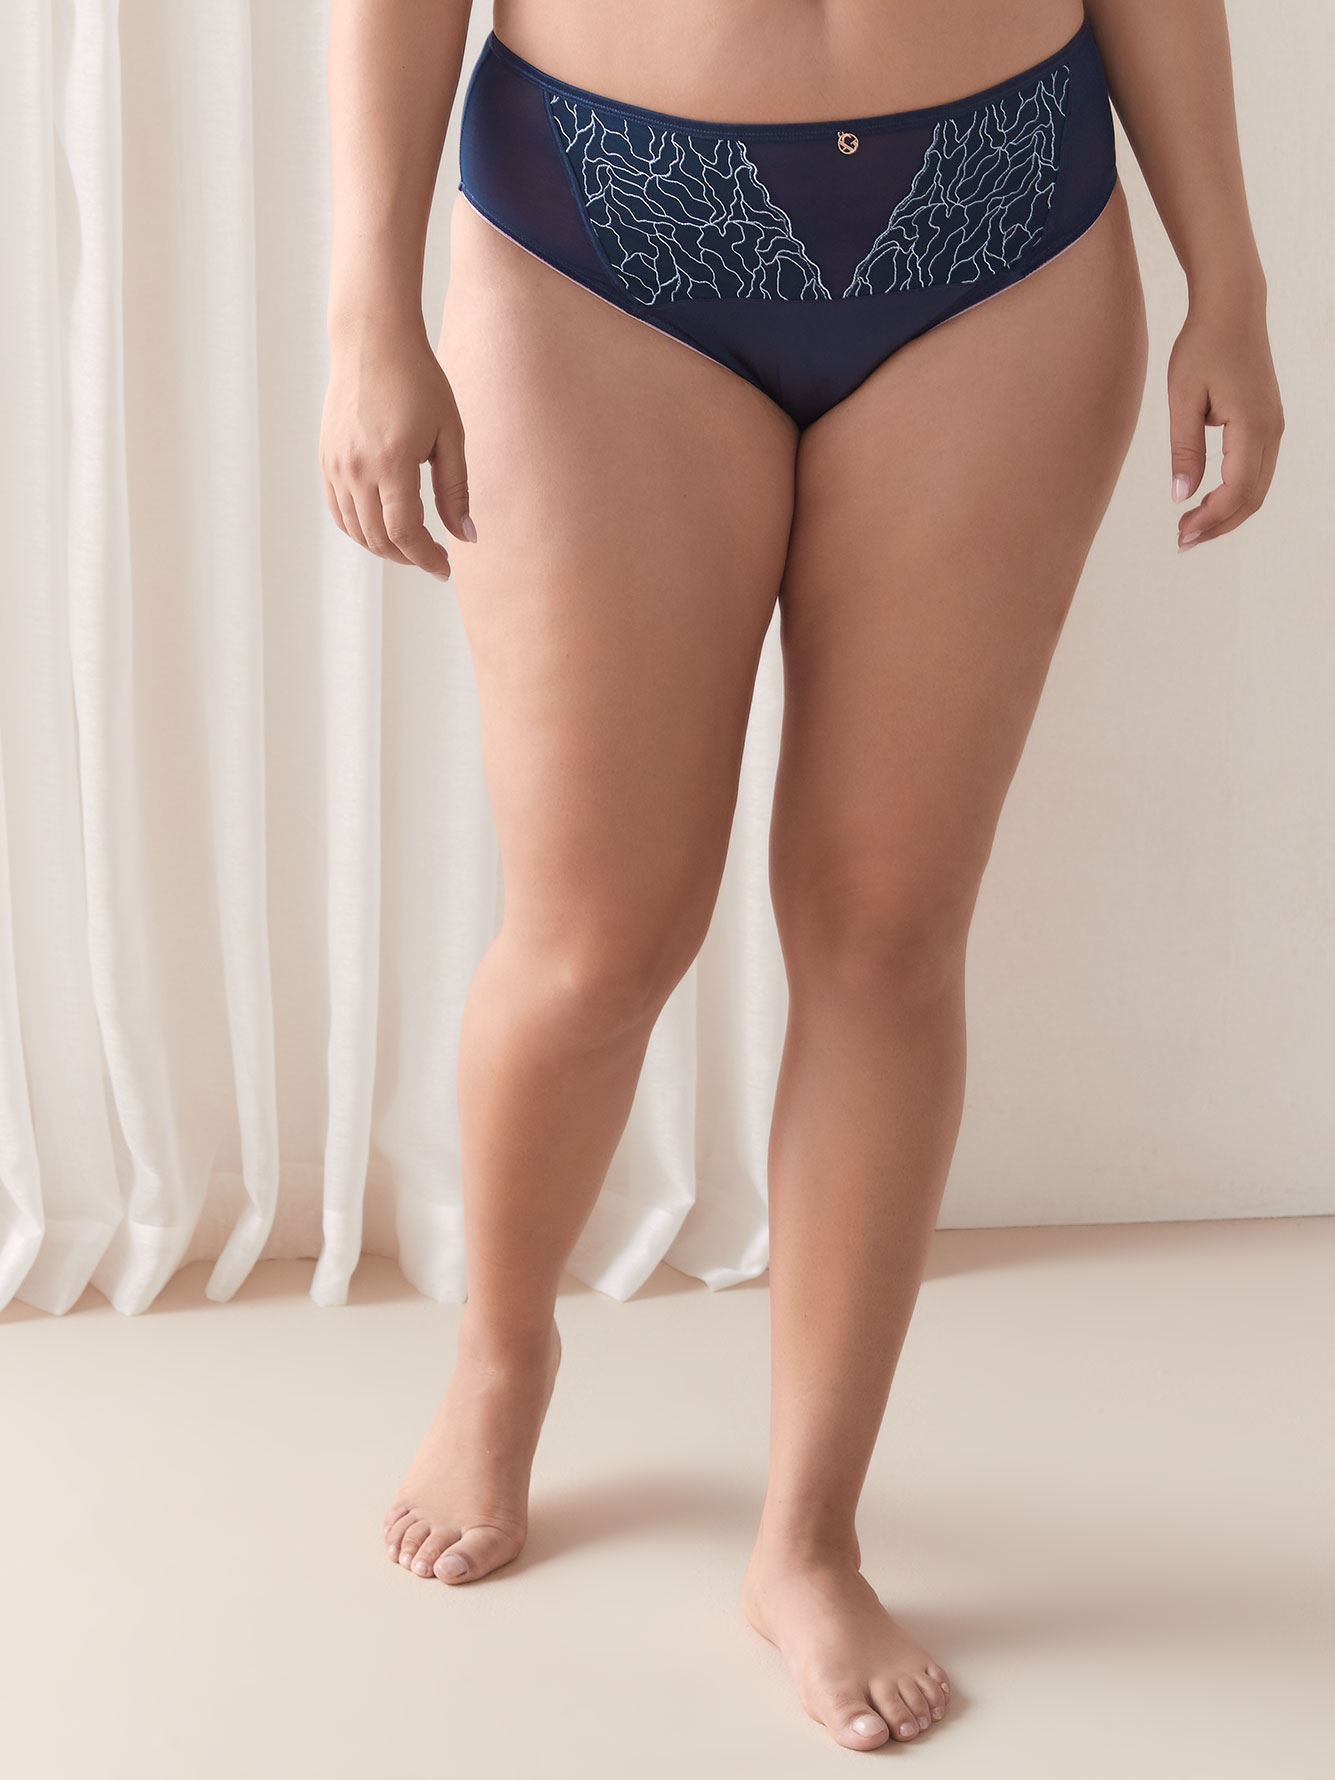 High Cut Satin Panty with Embroidery - Ashley Graham